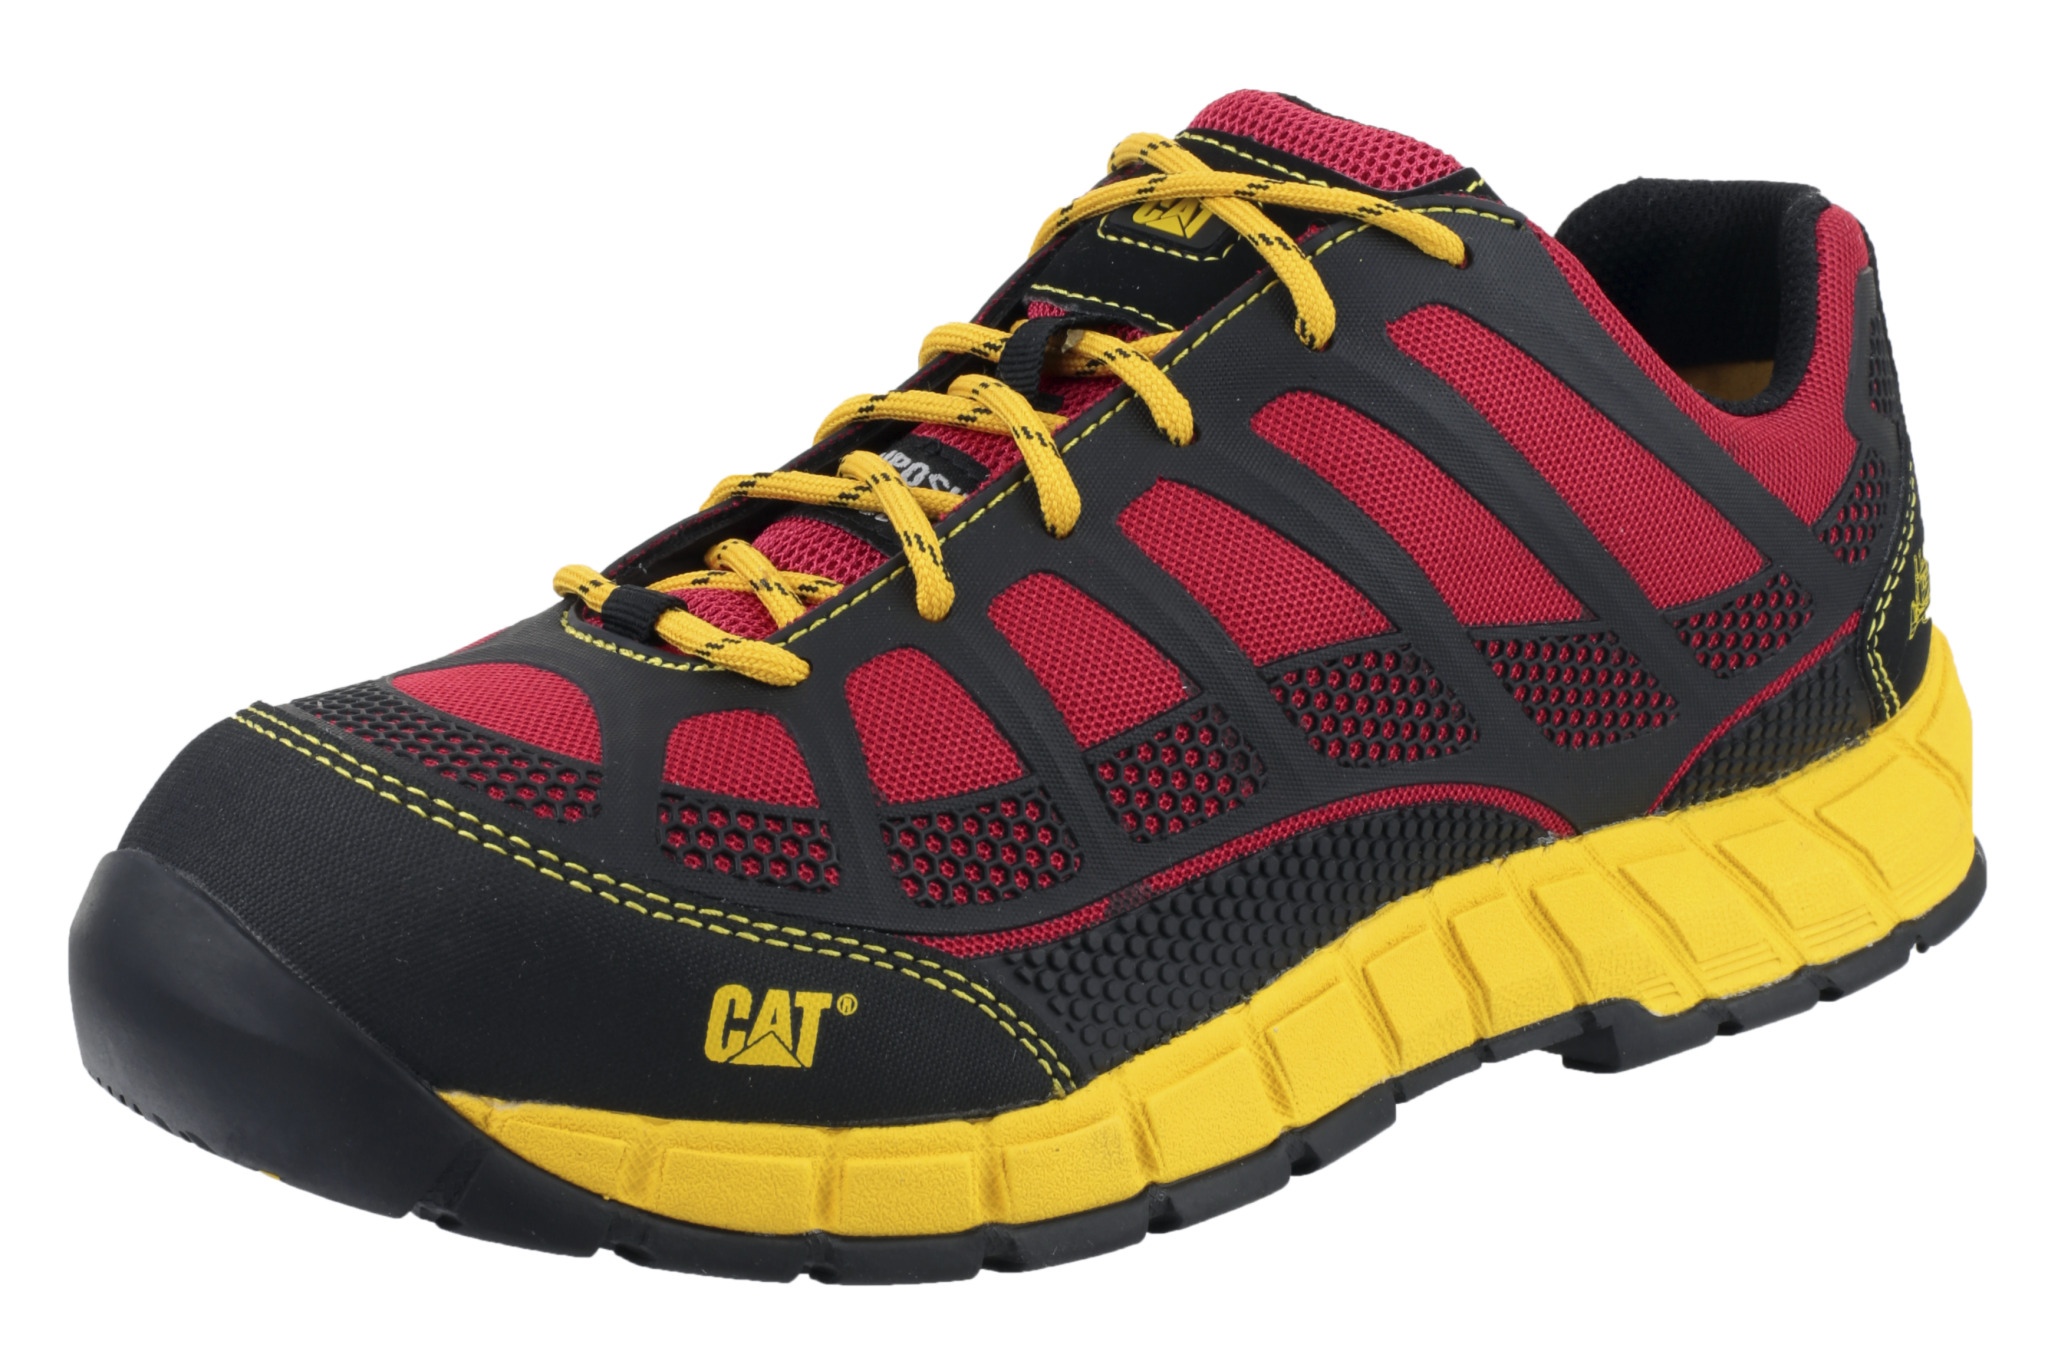 c05e1c53d84e Cat Streamline S1P Mens Safety Footwear Shoe Rubber Outsole PU Workwear  Boot